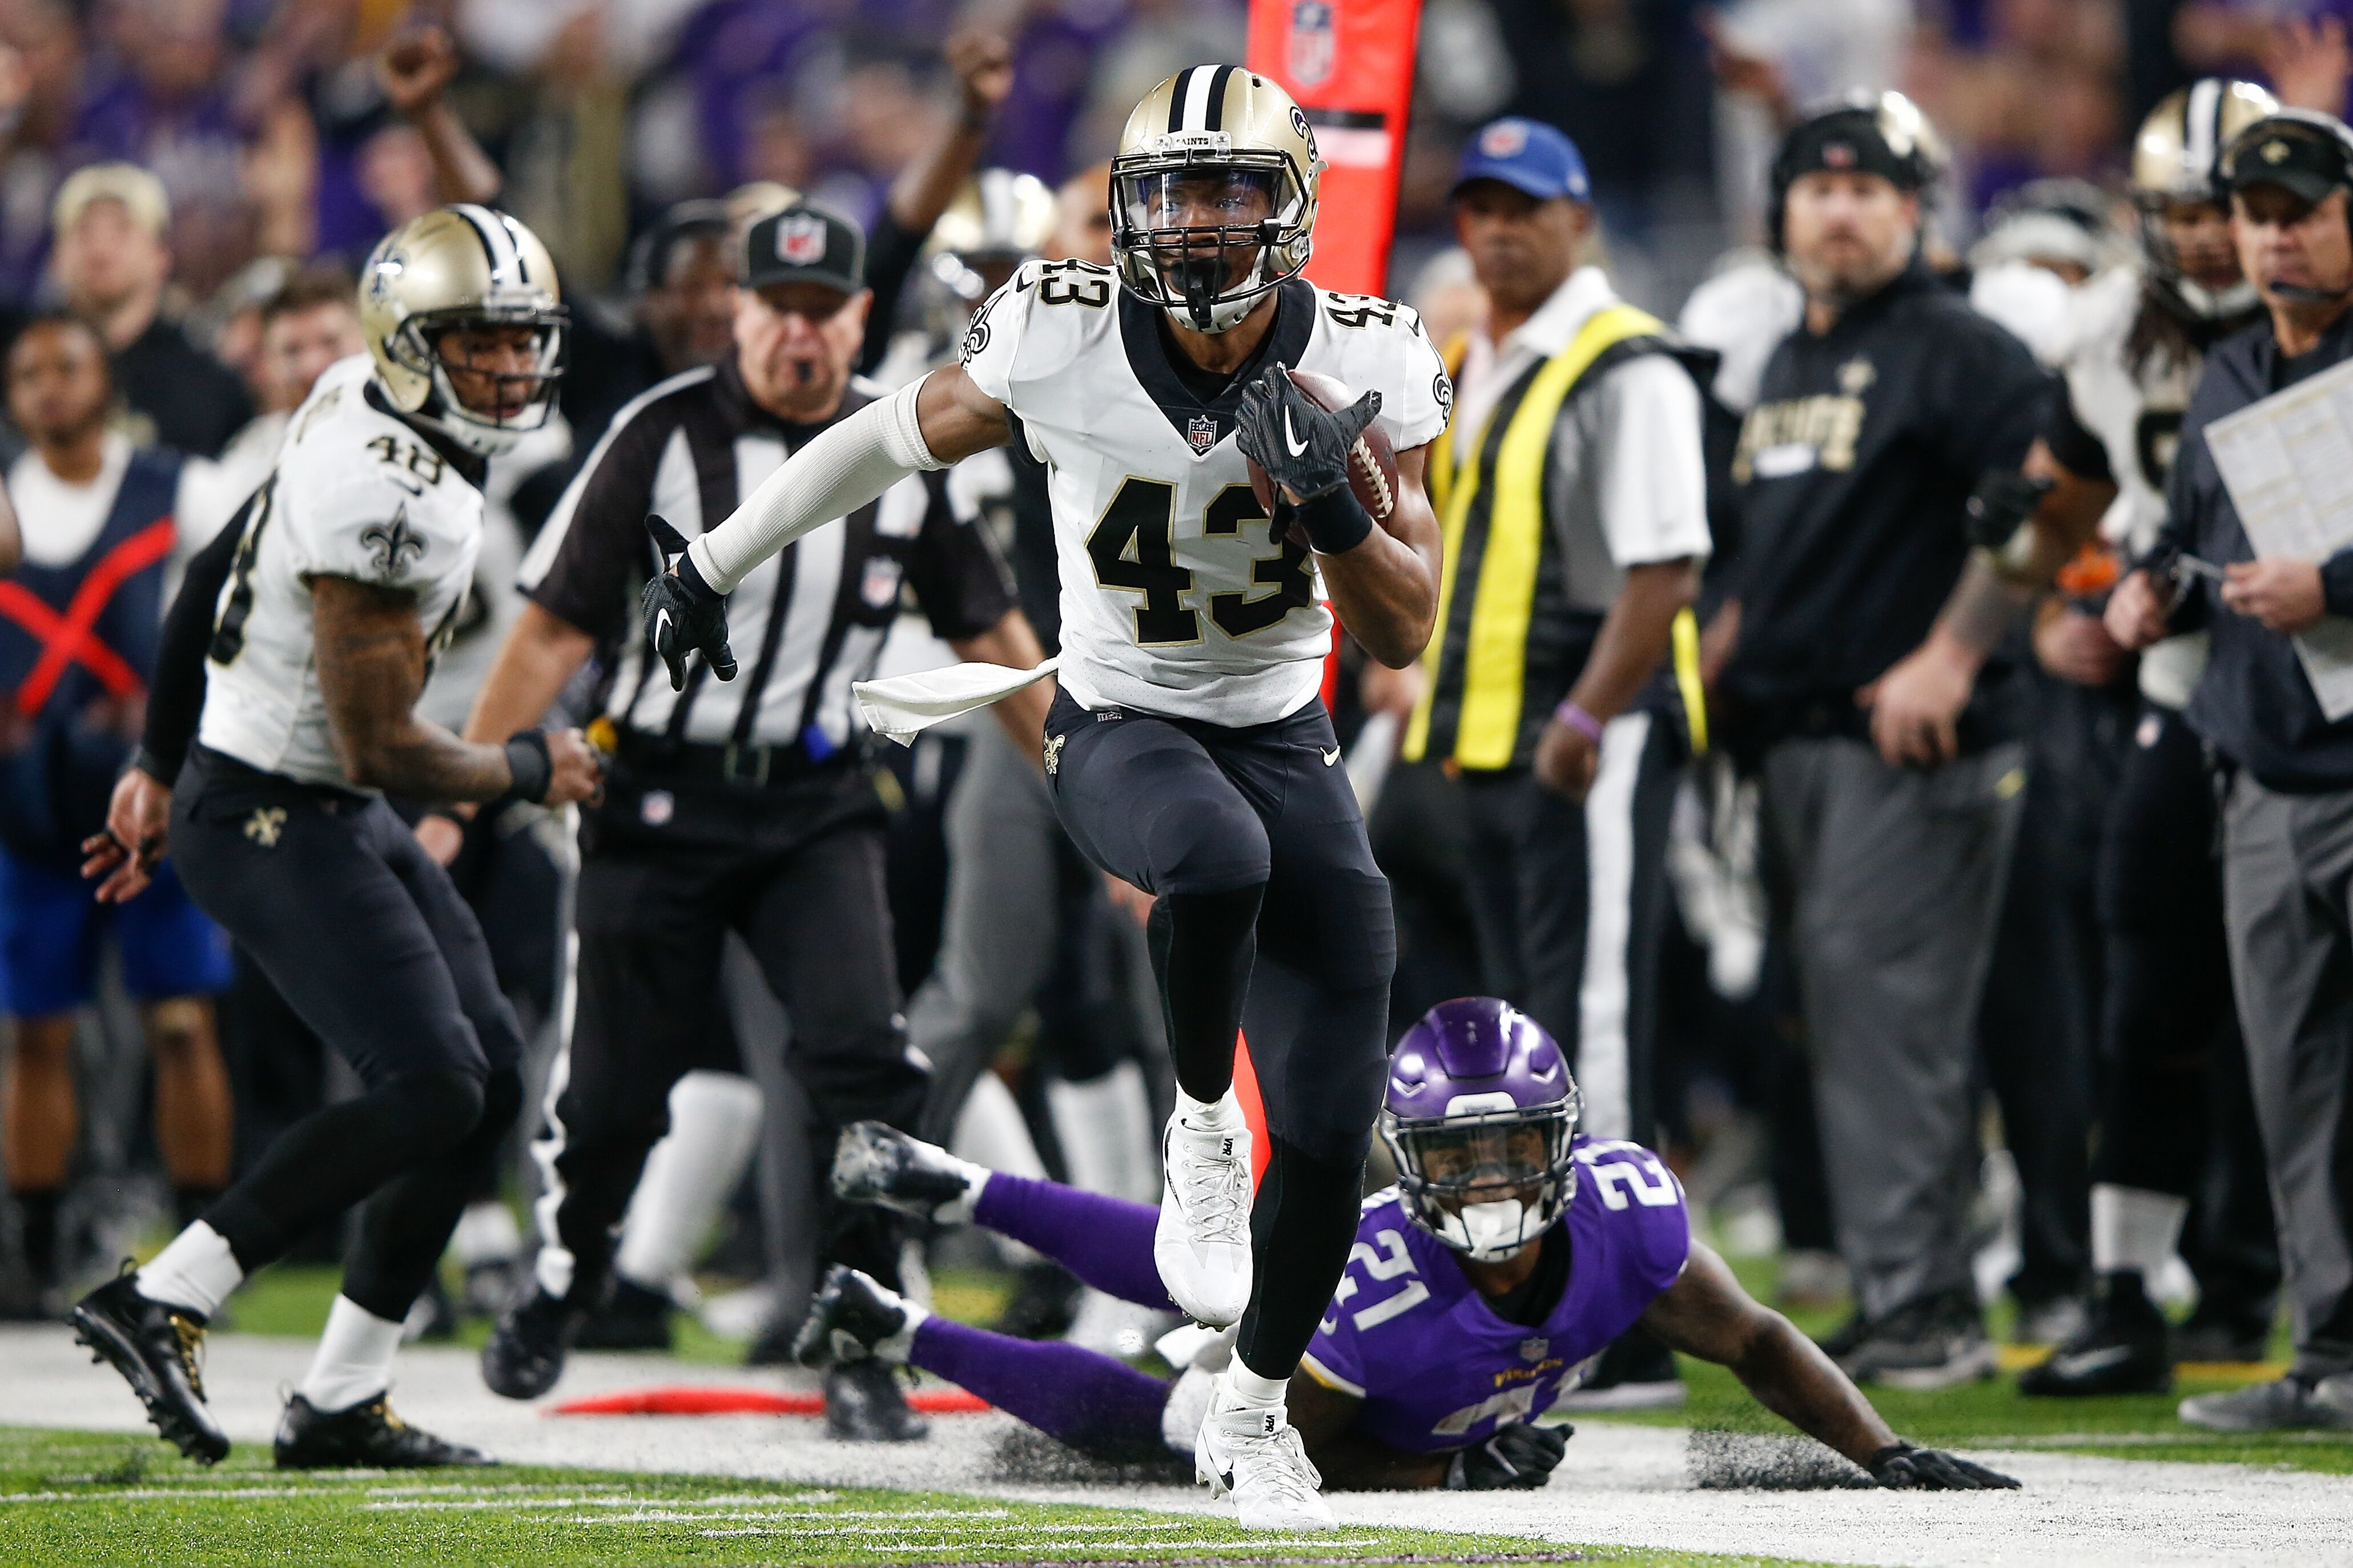 904962476-divisional-round-new-orleans-saints-v-minnesota-vikings.jpg